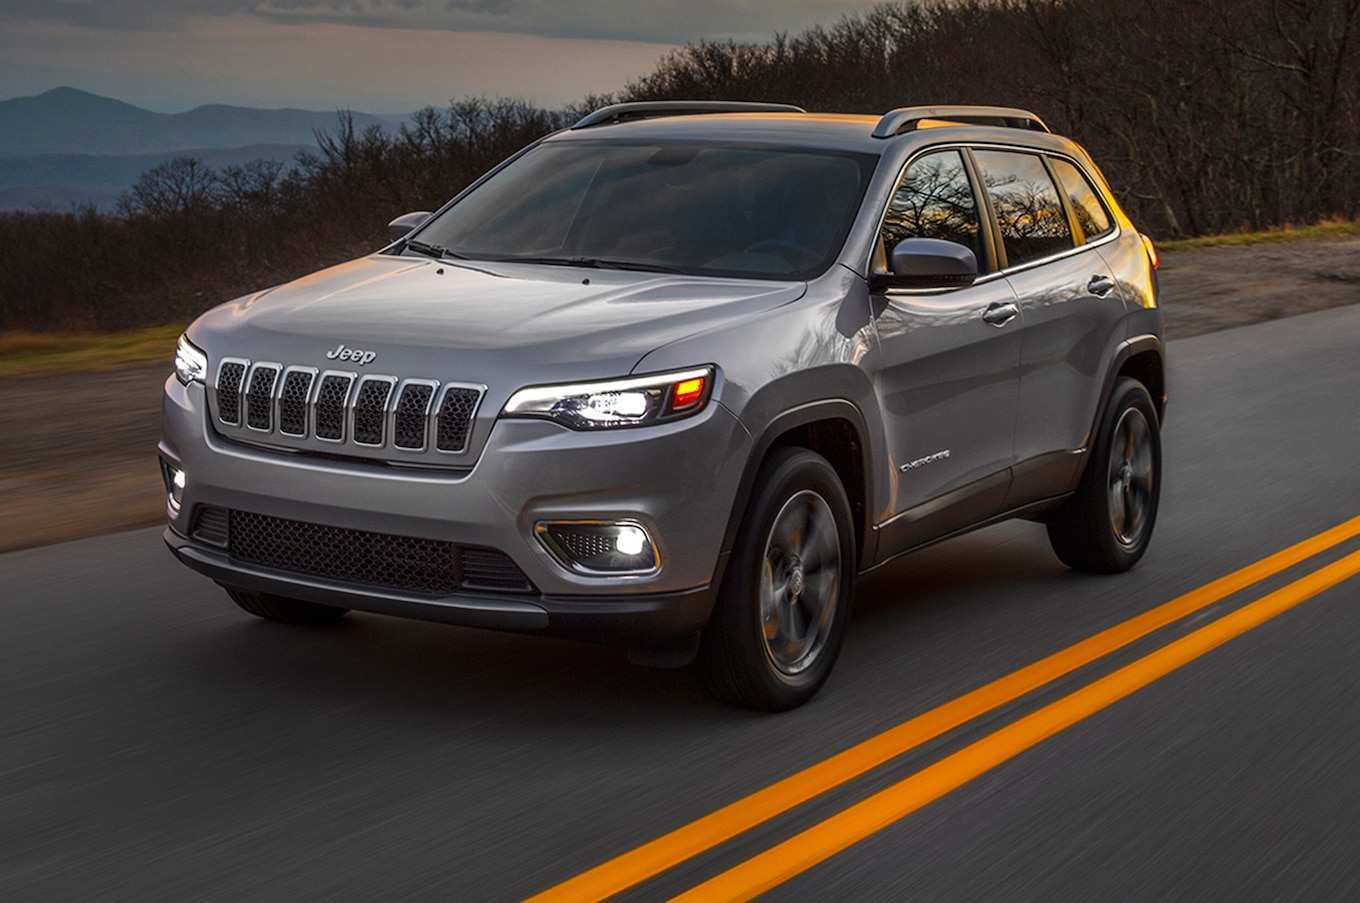 91 The 2019 Jeep Cherokee Kl Photos by 2019 Jeep Cherokee Kl